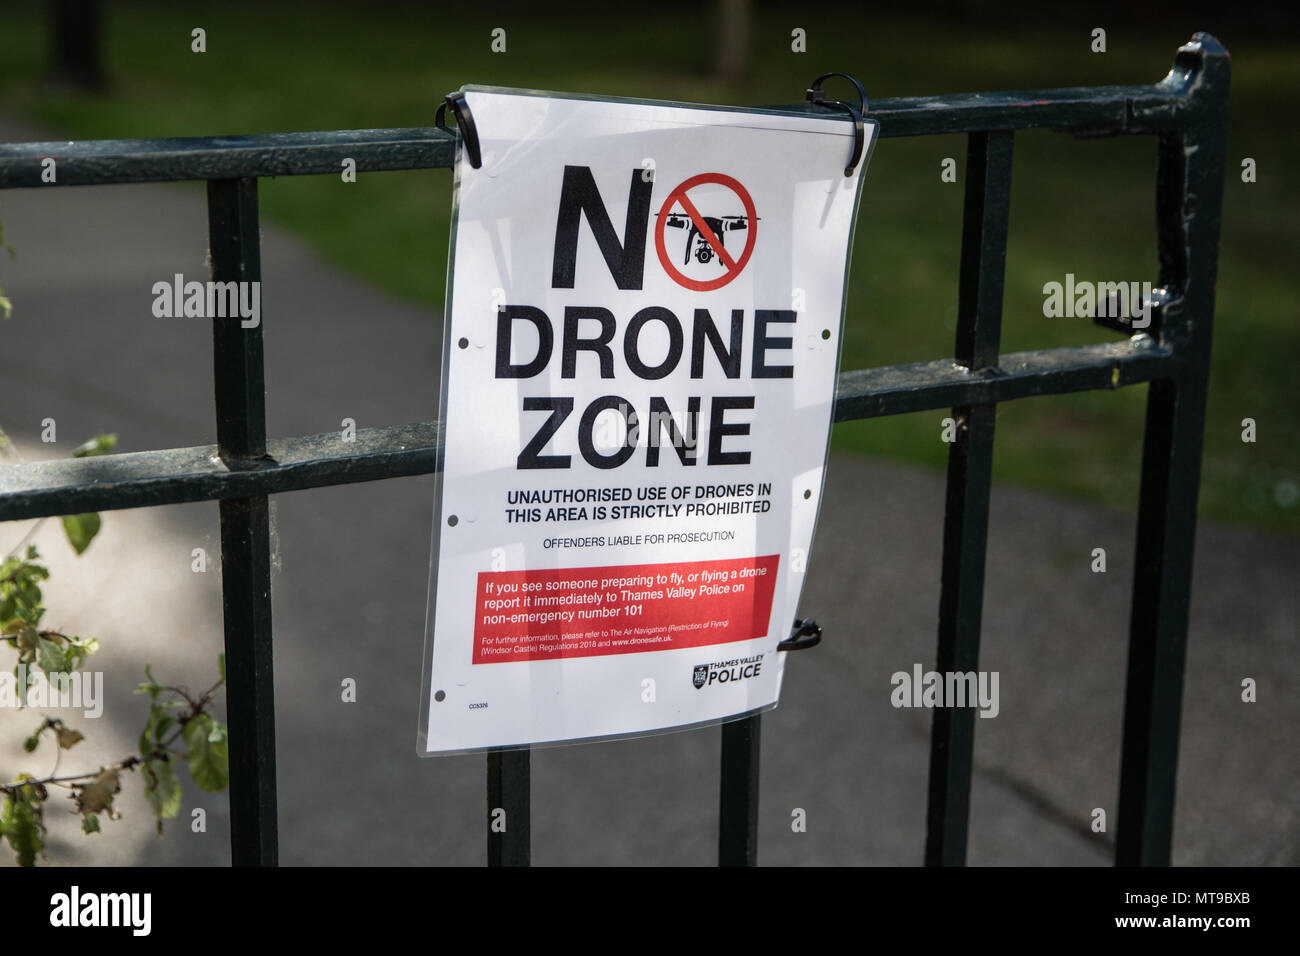 Eton, UK. 21st May, 2018. A sign posted by Thames Valley Police on Eton High Street prohibiting the unauthorised use of drones. - Stock Image